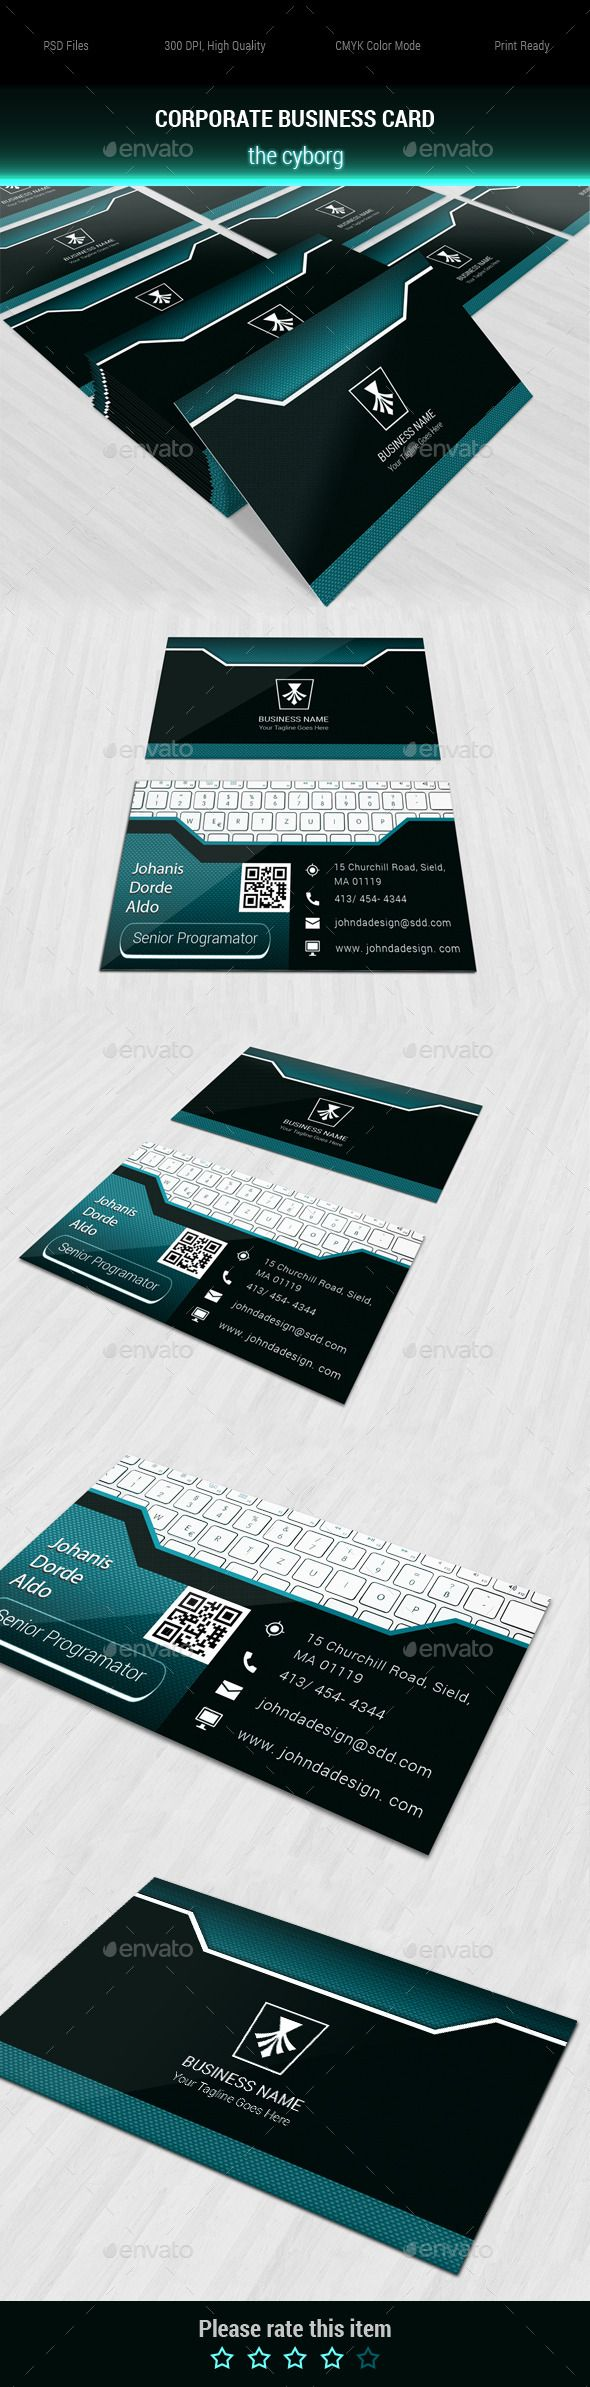 Corporate Business Card the Cyborg